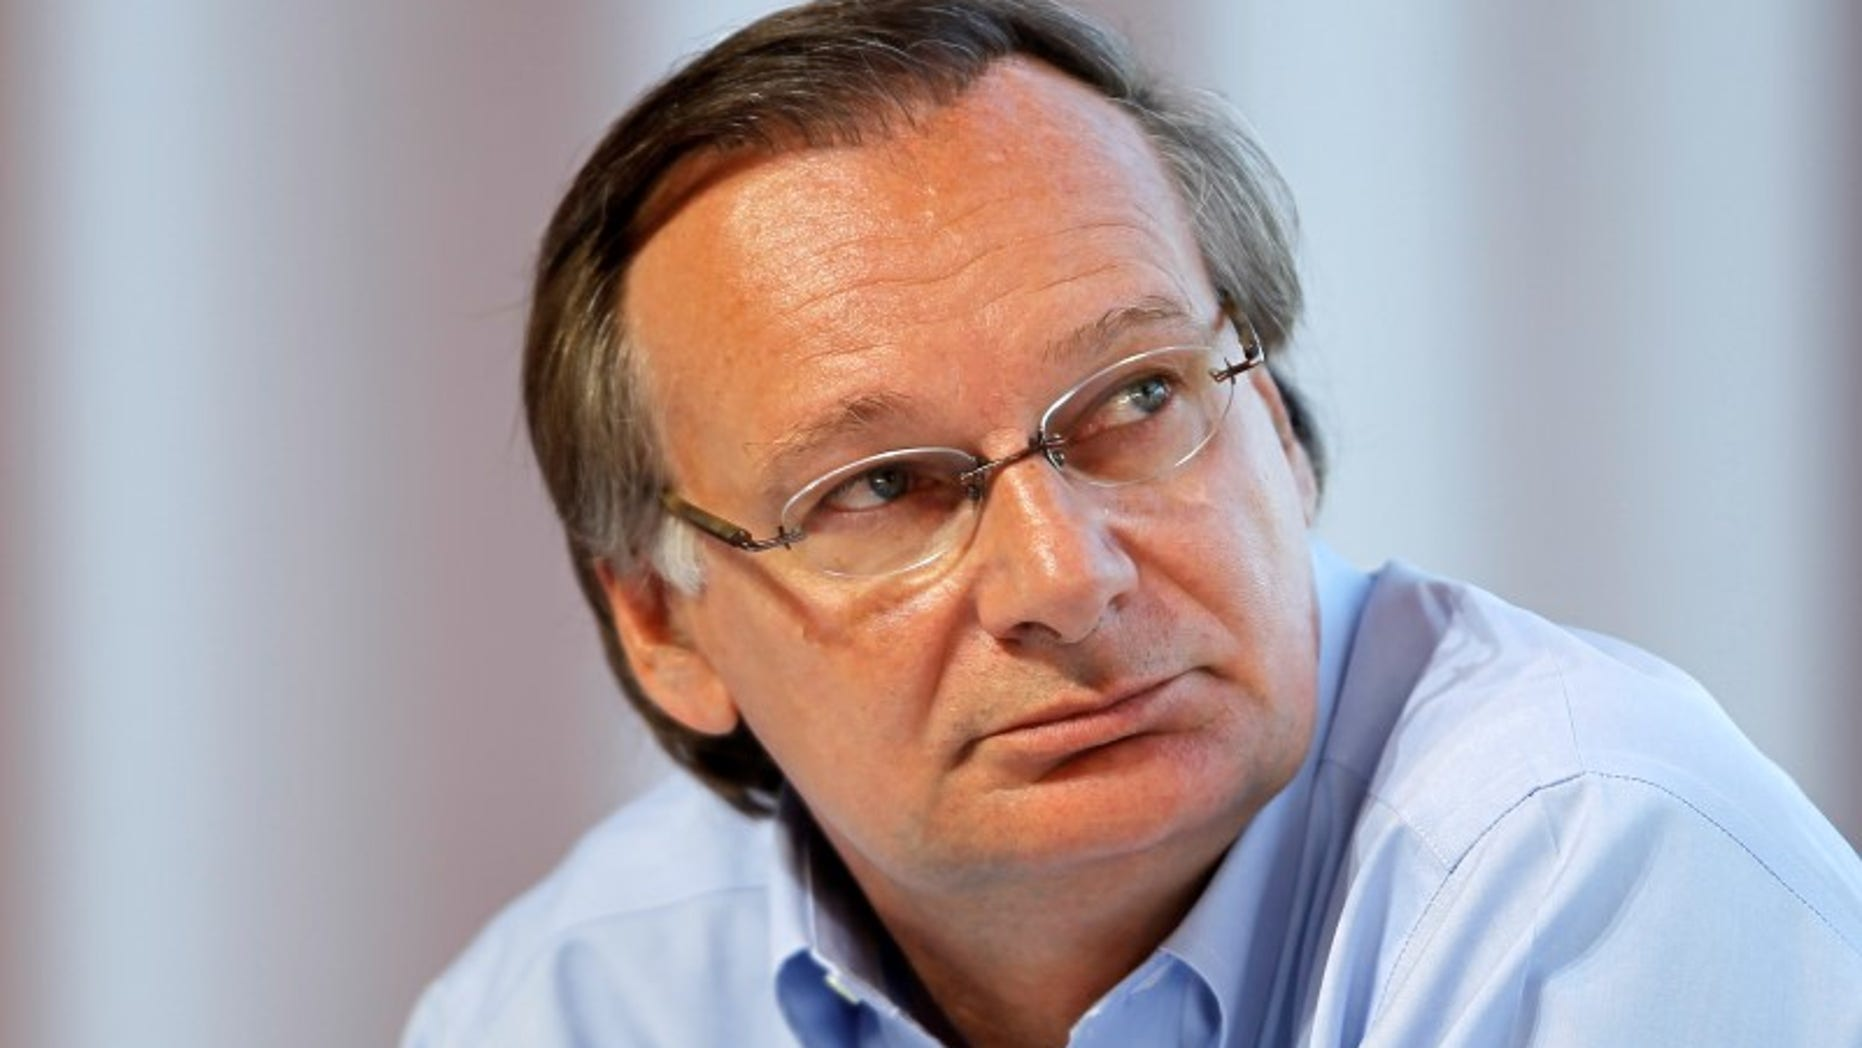 Pierre Nanterme, Chief executive of Accenture's Financial Services operating group, attends the French employers' body MEDEF union summer forum in Jouy-en-Josas